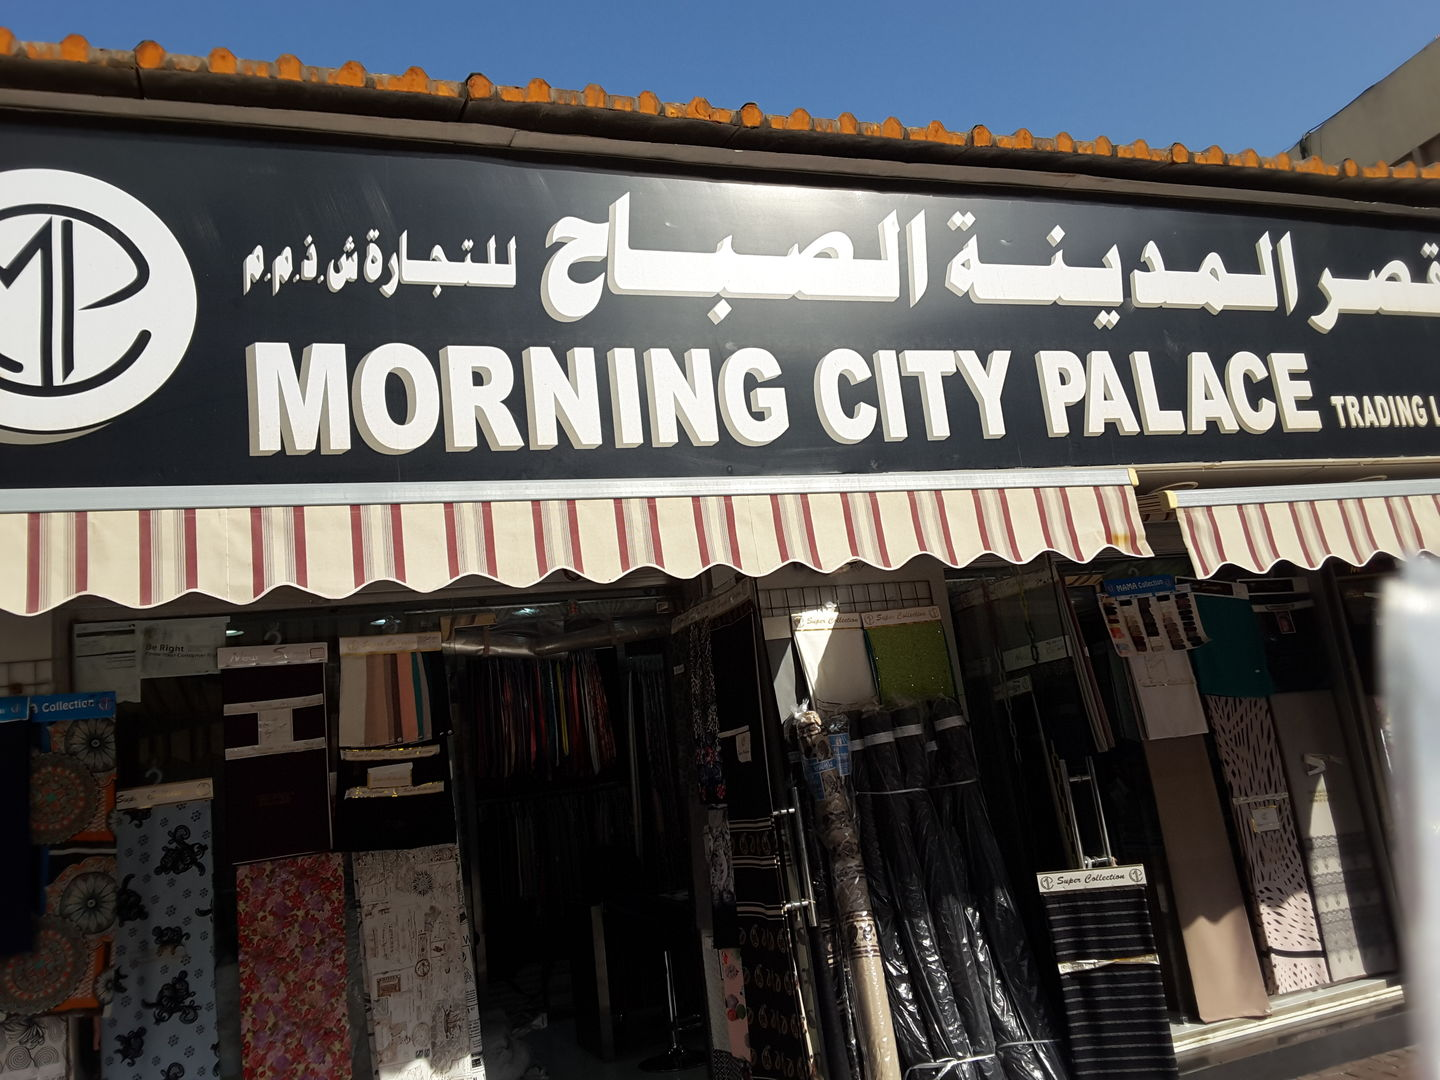 HiDubai-business-morning-city-palace-trading-b2b-services-distributors-wholesalers-al-fahidi-al-souq-al-kabeer-dubai-2